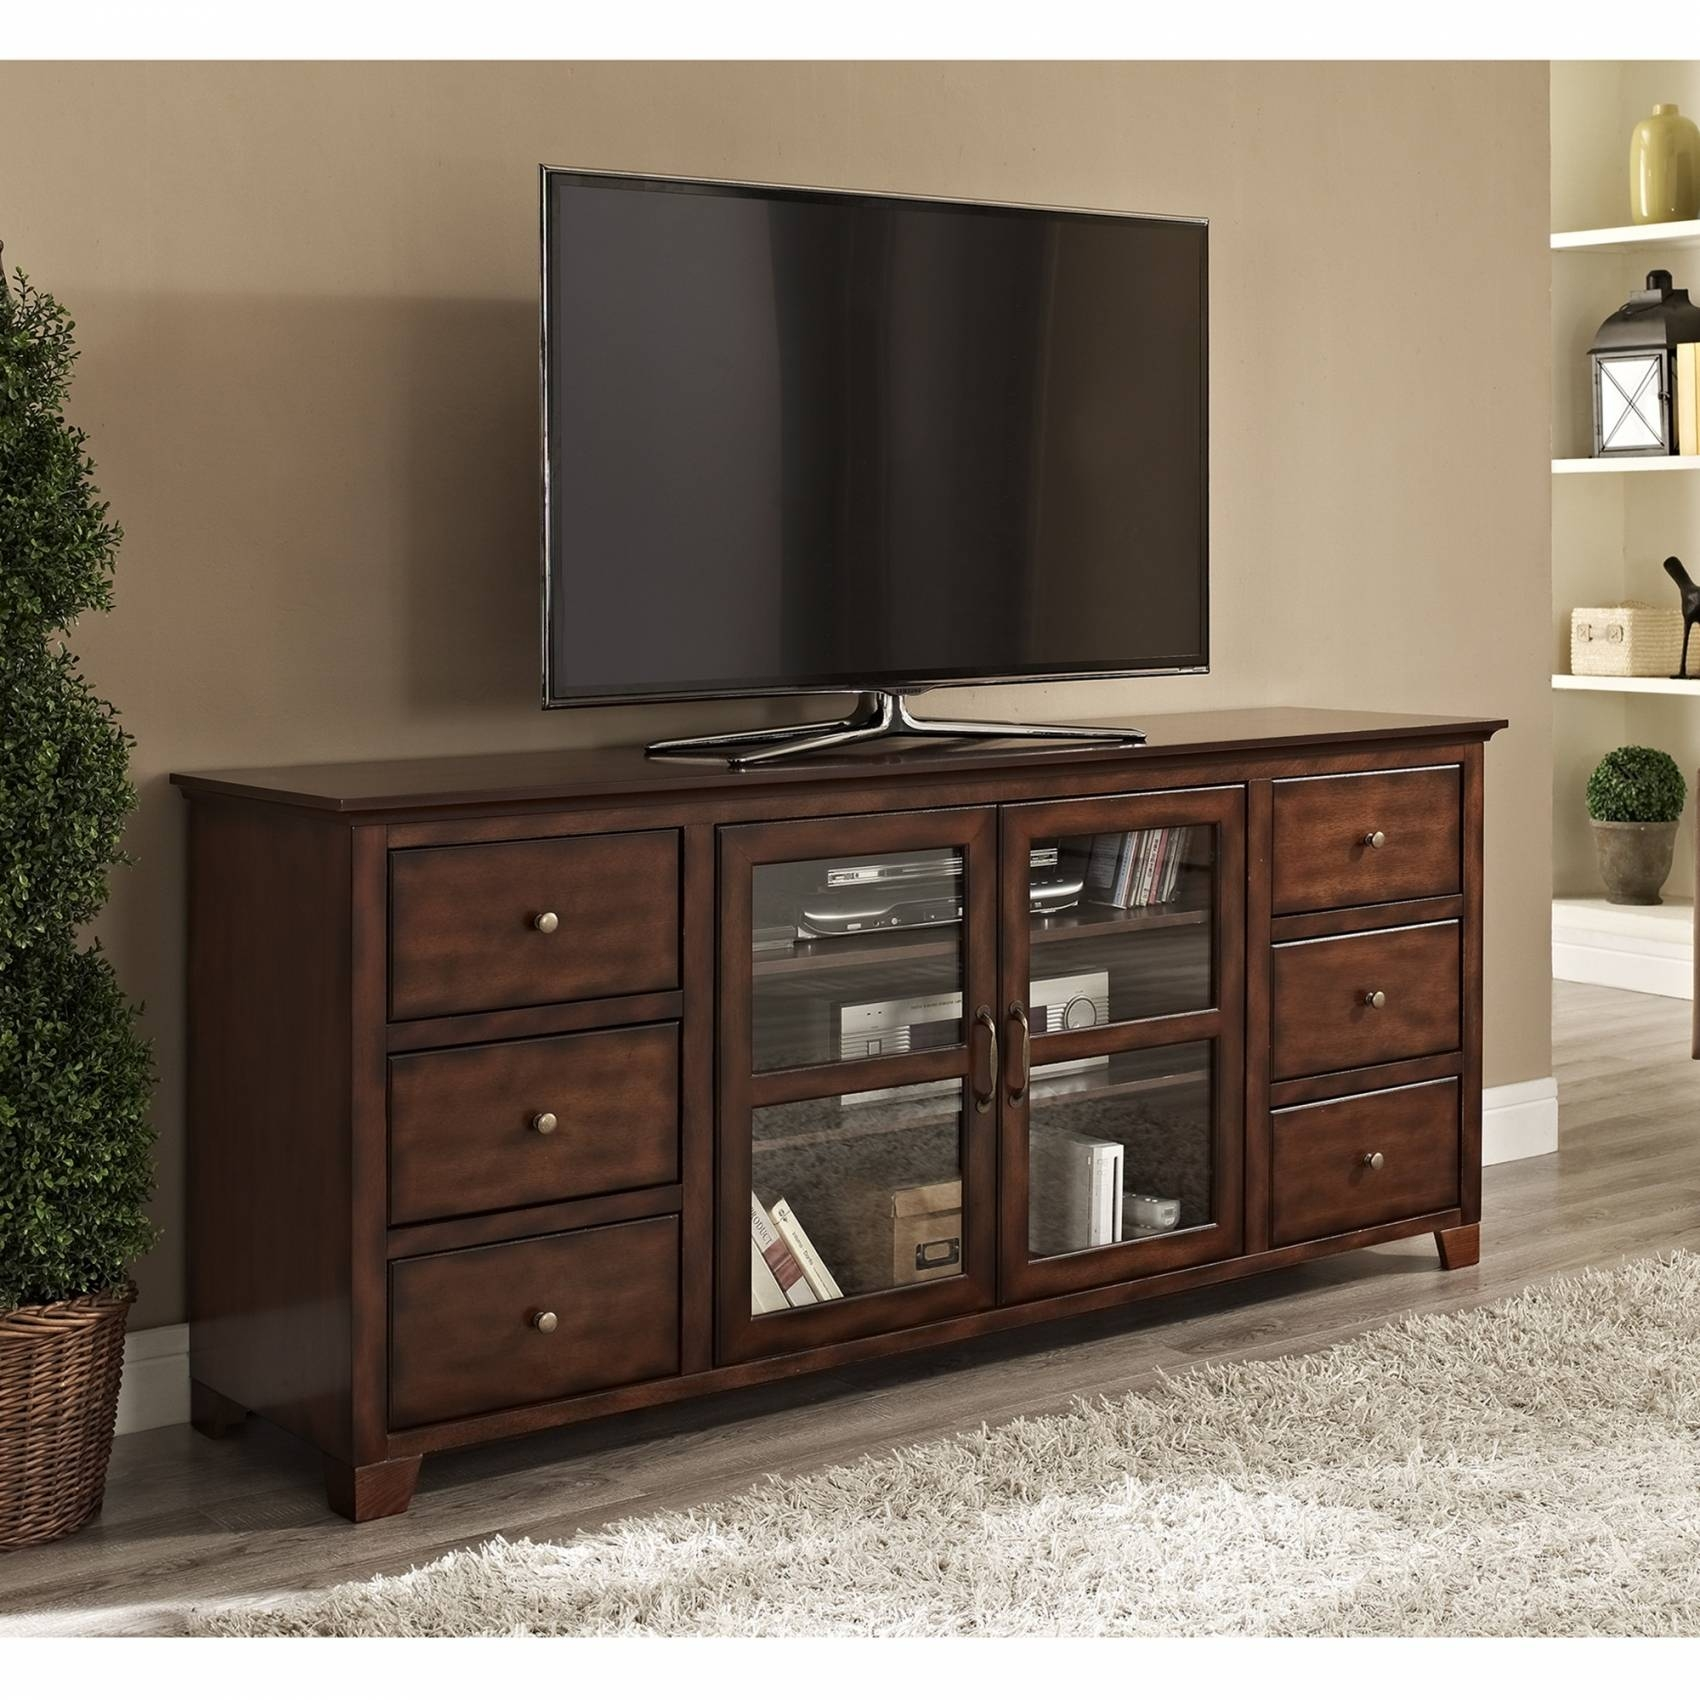 Awesome Tv Stands With Storage Ideas | Vgmnation regarding Storage Tv Stands (Image 1 of 15)